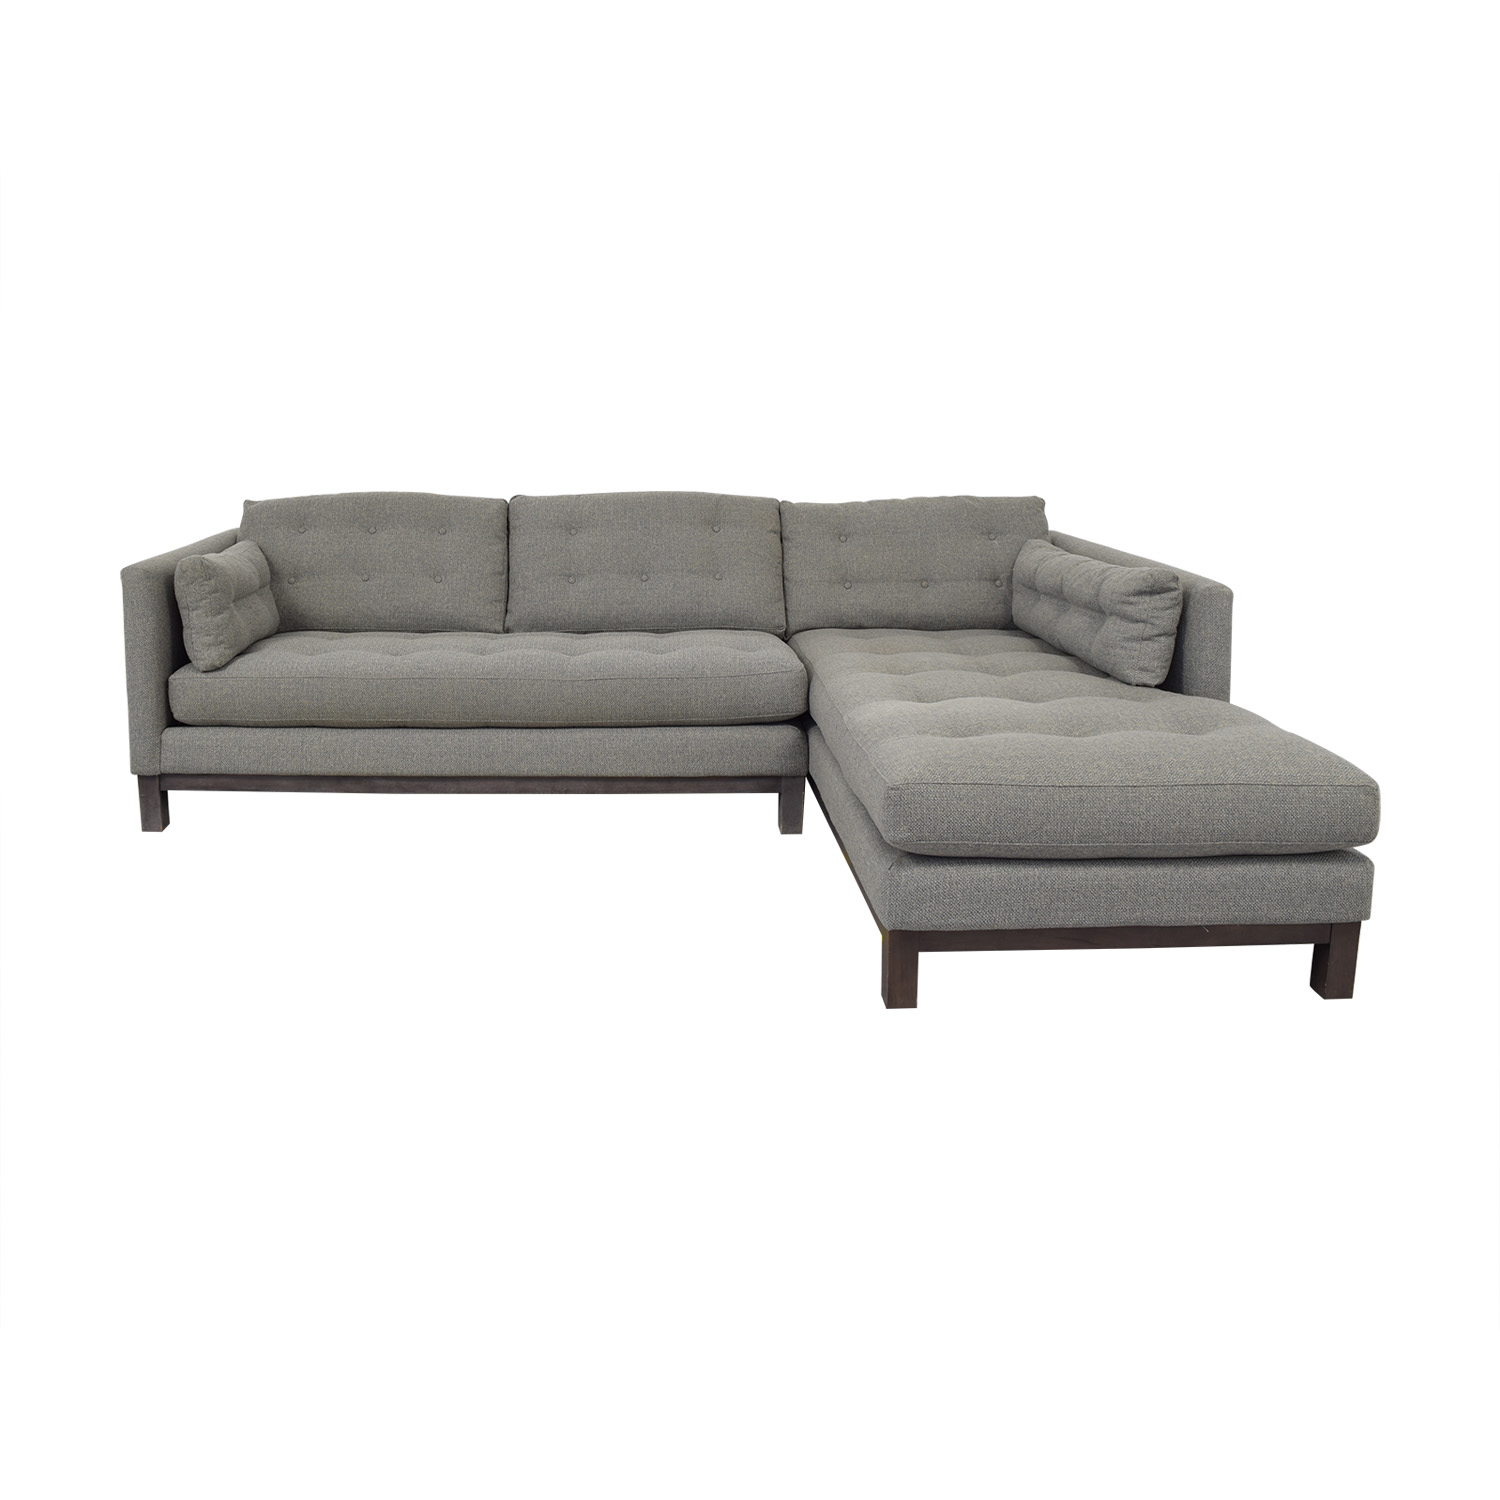 76% OFF - McCreary Modern McCreary Modern Sectional Chaise Sofa / Sofas